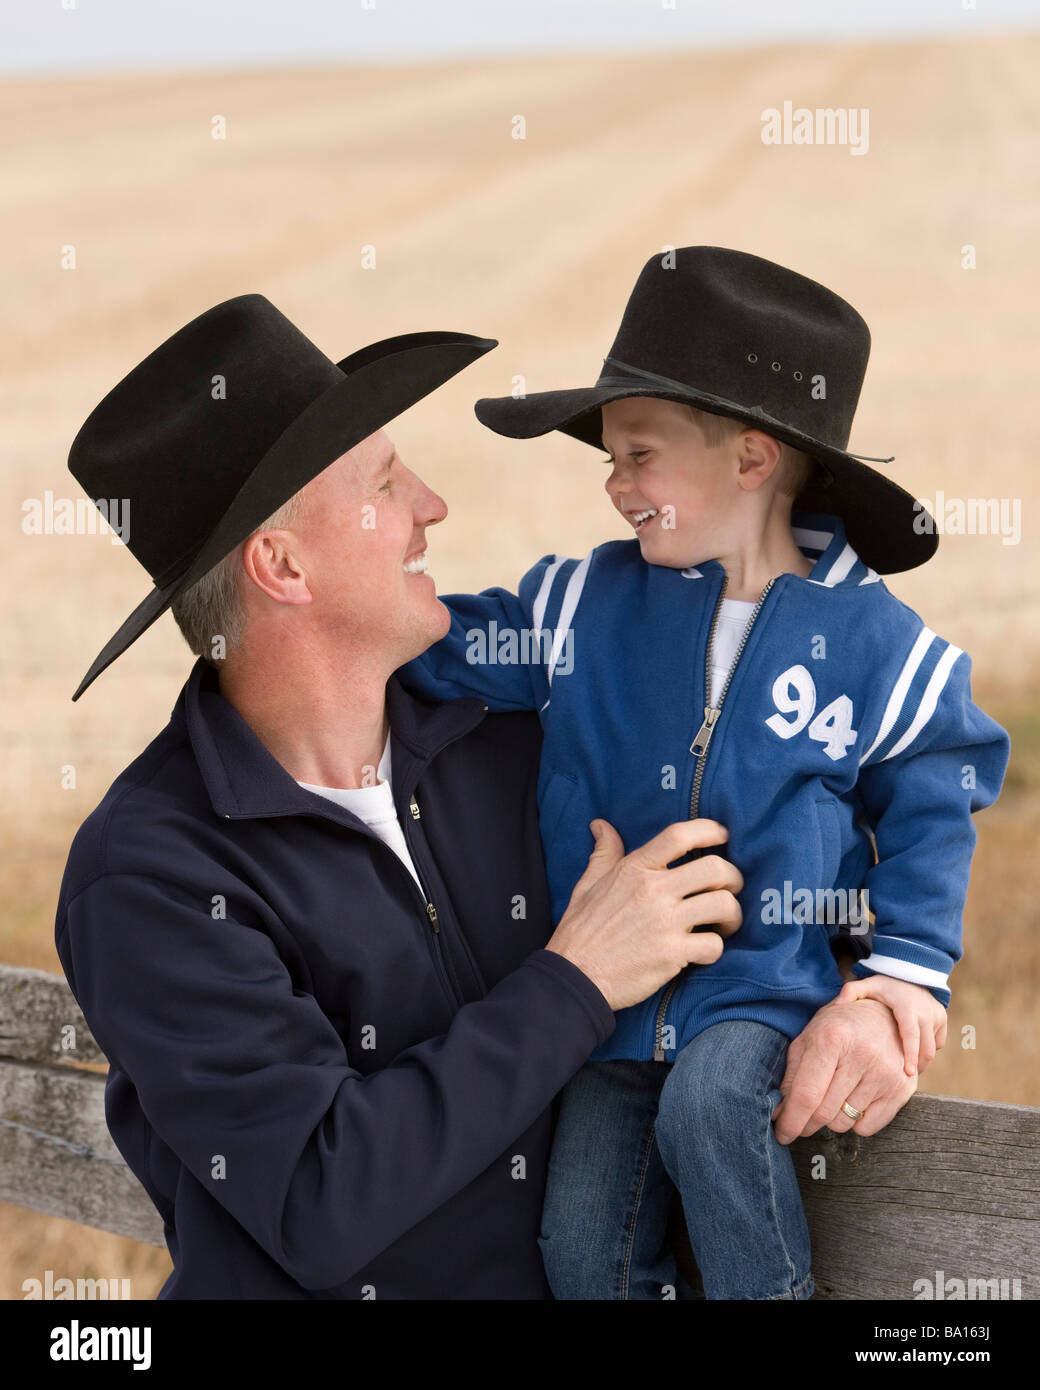 Father and son wearing cowboy hats Stock Photo  23383686 - Alamy 5a68551829b